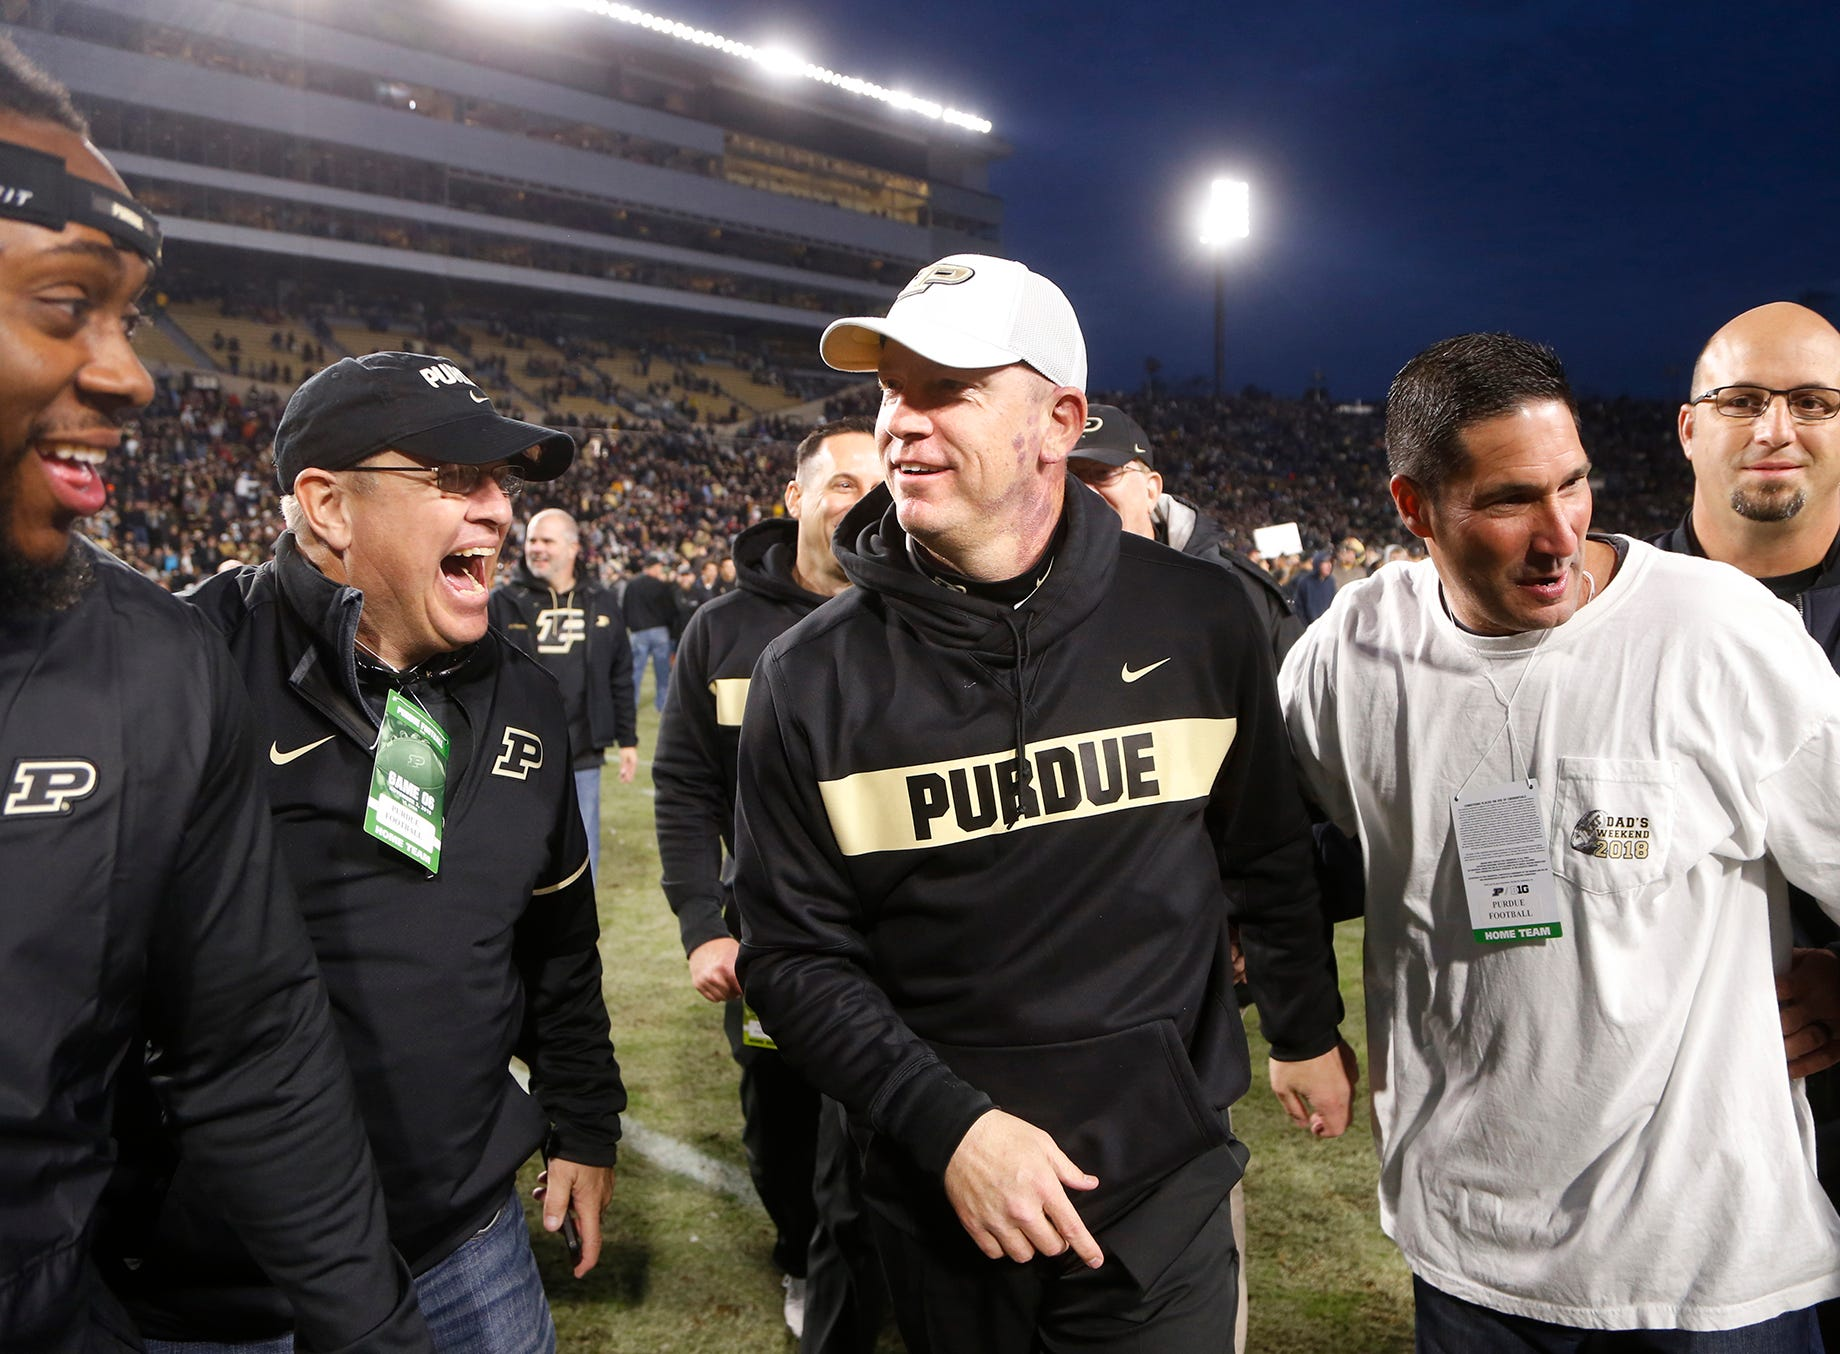 Purdue head coach Jeff Brohm is congratulated by fans after the Boilermakers defeated Iowa 38-36 Saturday, November 3, 2018, at Ross-Ade Stadium.